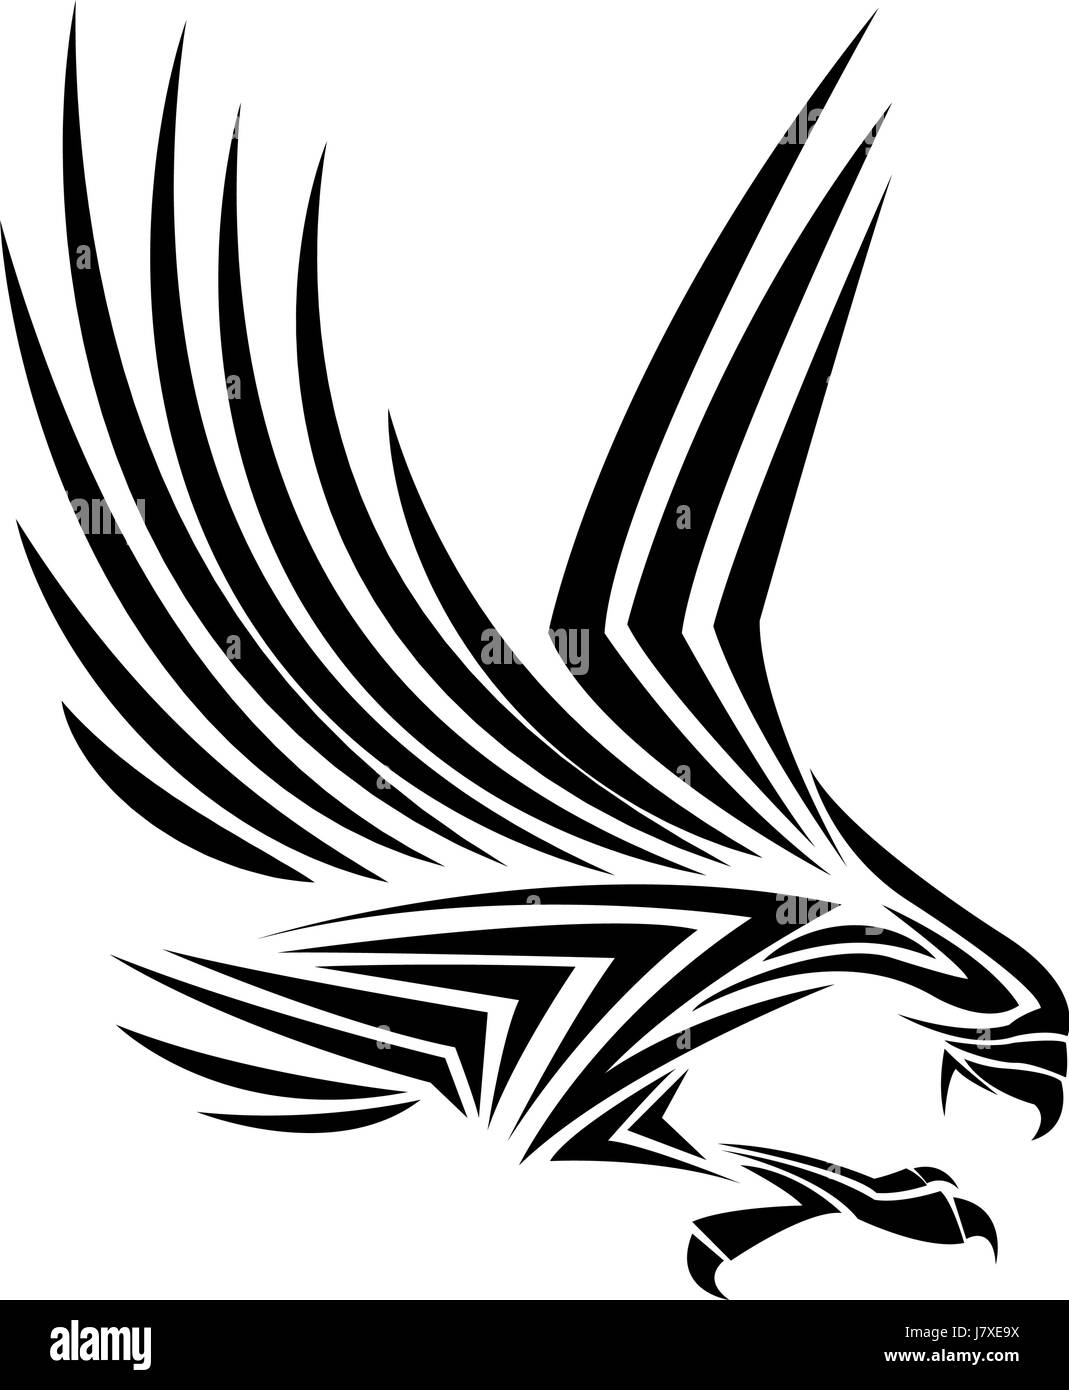 Flying eagle spread out its feather black eagle on white background stock